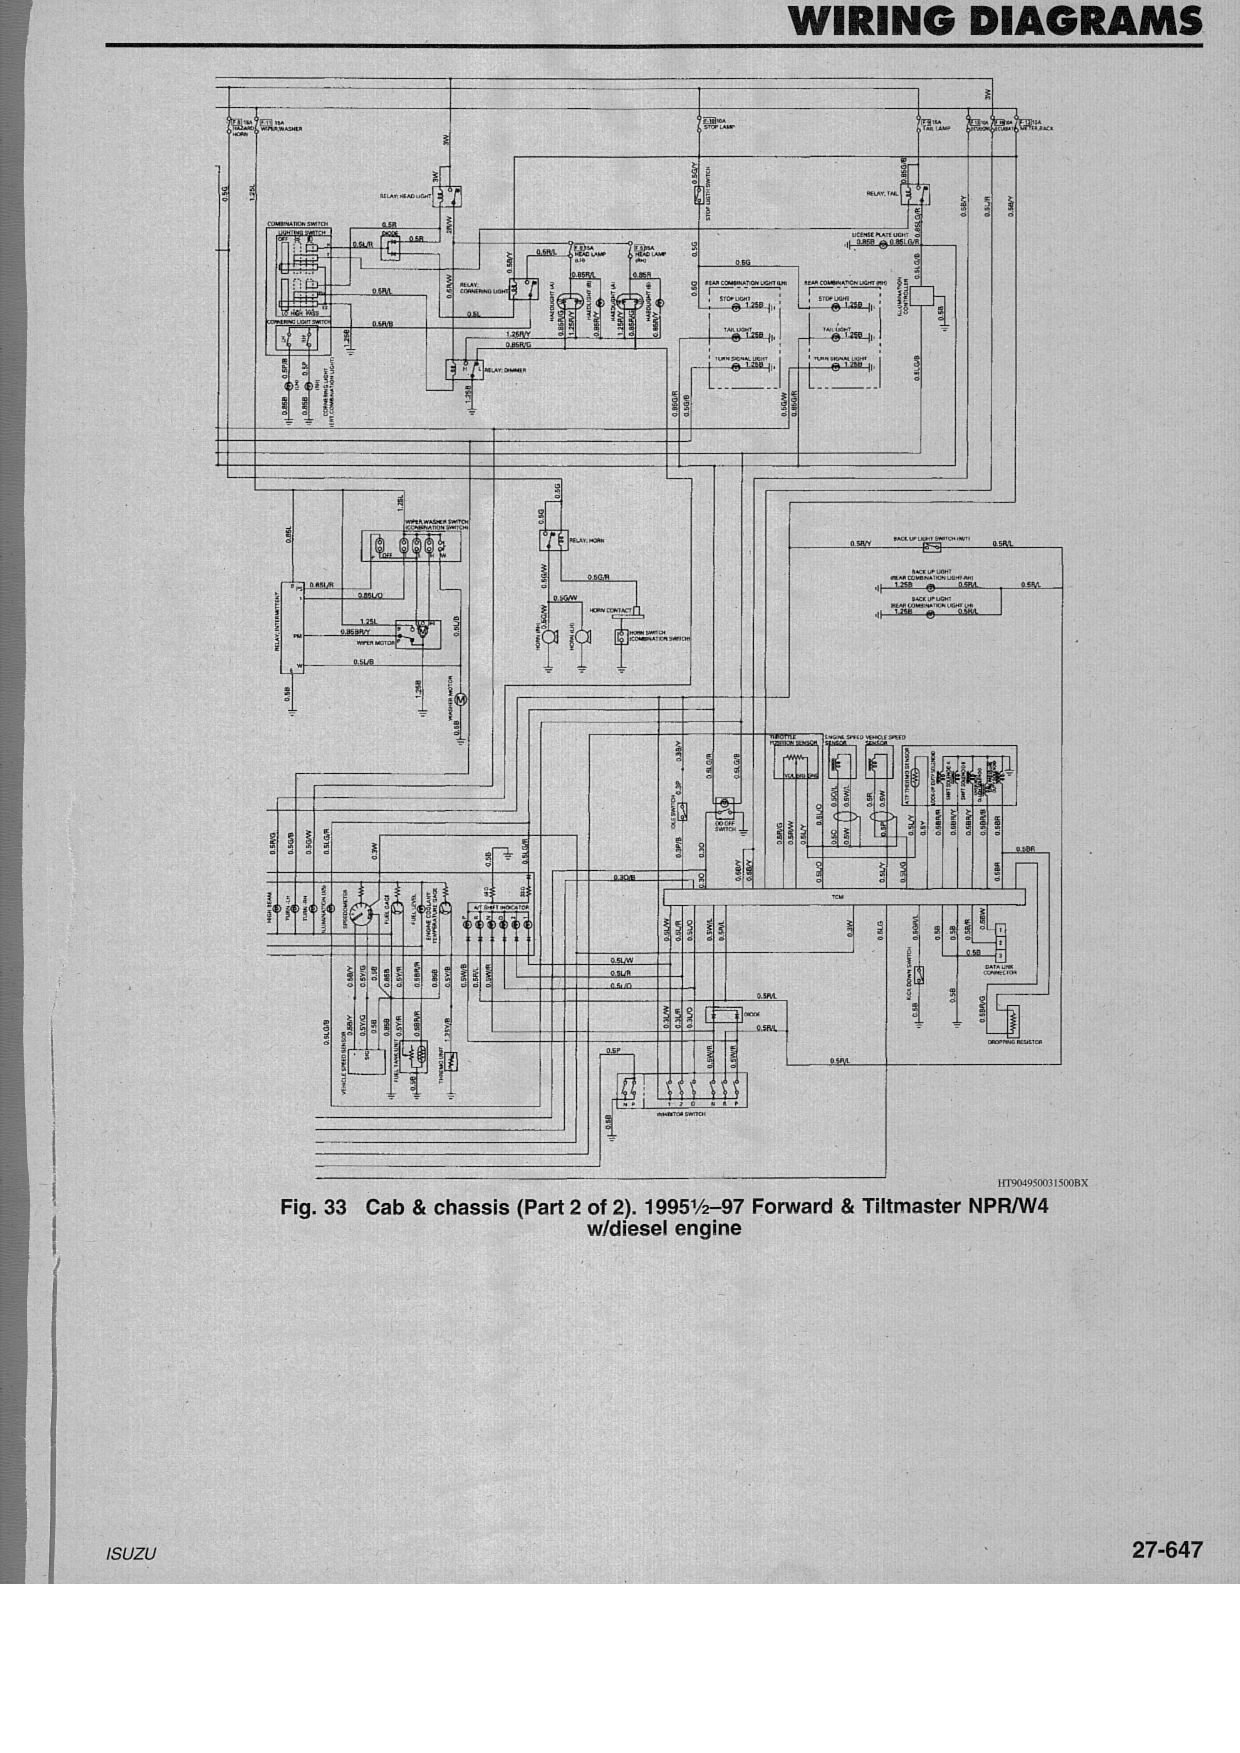 2010 04 14_210745_97_Isuzu_headlight_wiring 1996 isuzu npr wiring diagram wiring diagram shrutiradio 1995 isuzu npr wiring diagram at readyjetset.co